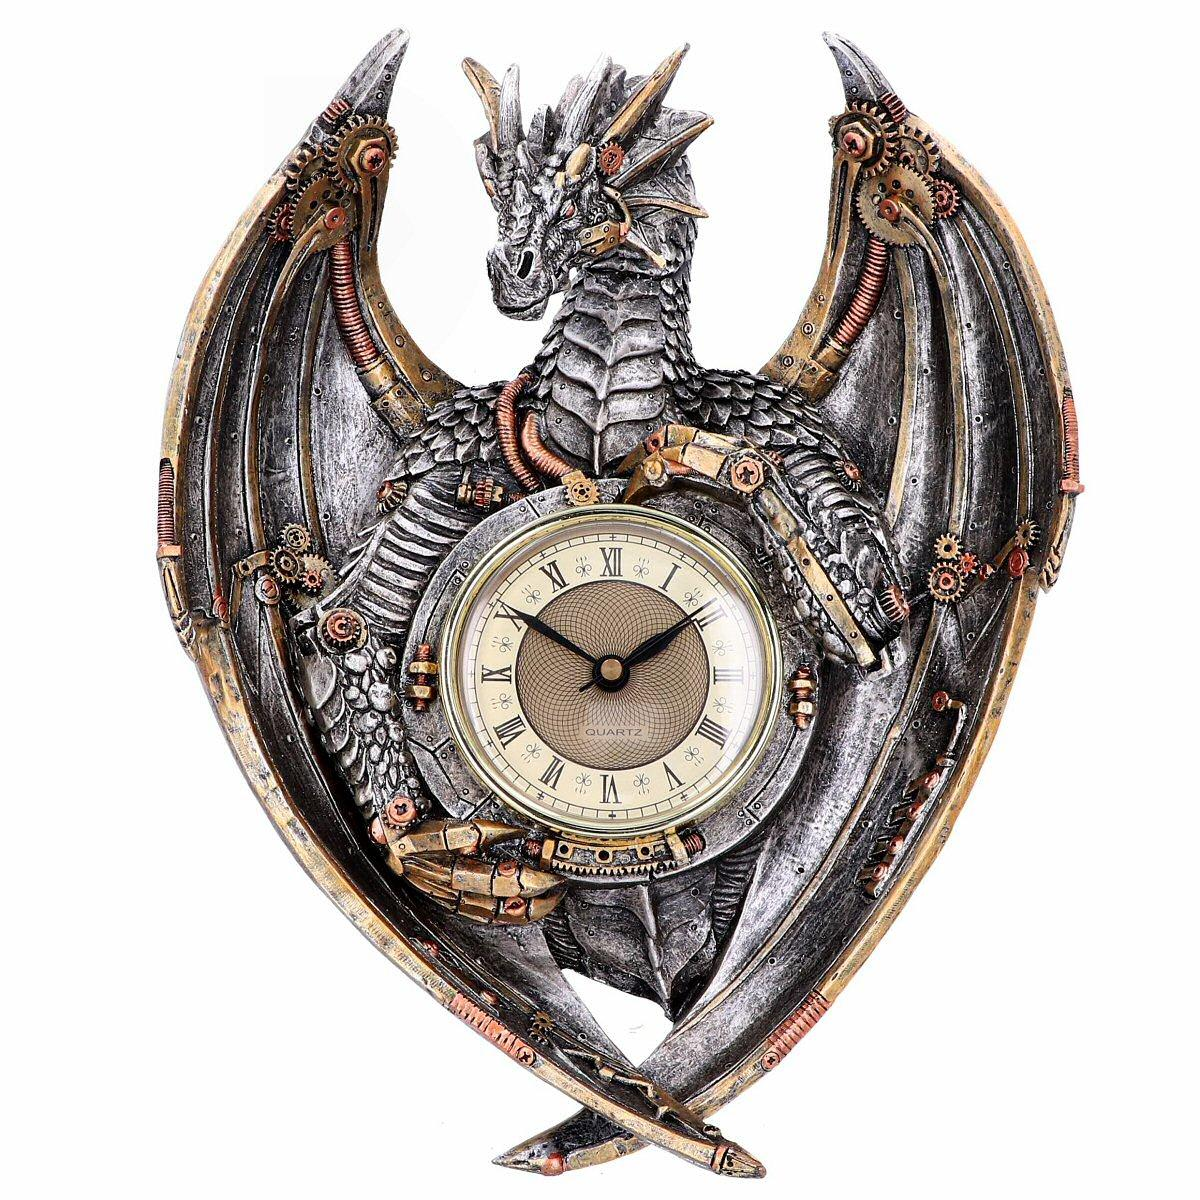 Dracus Horologium - Steampunk Dragon Clock - Nemesis Now U4770P9